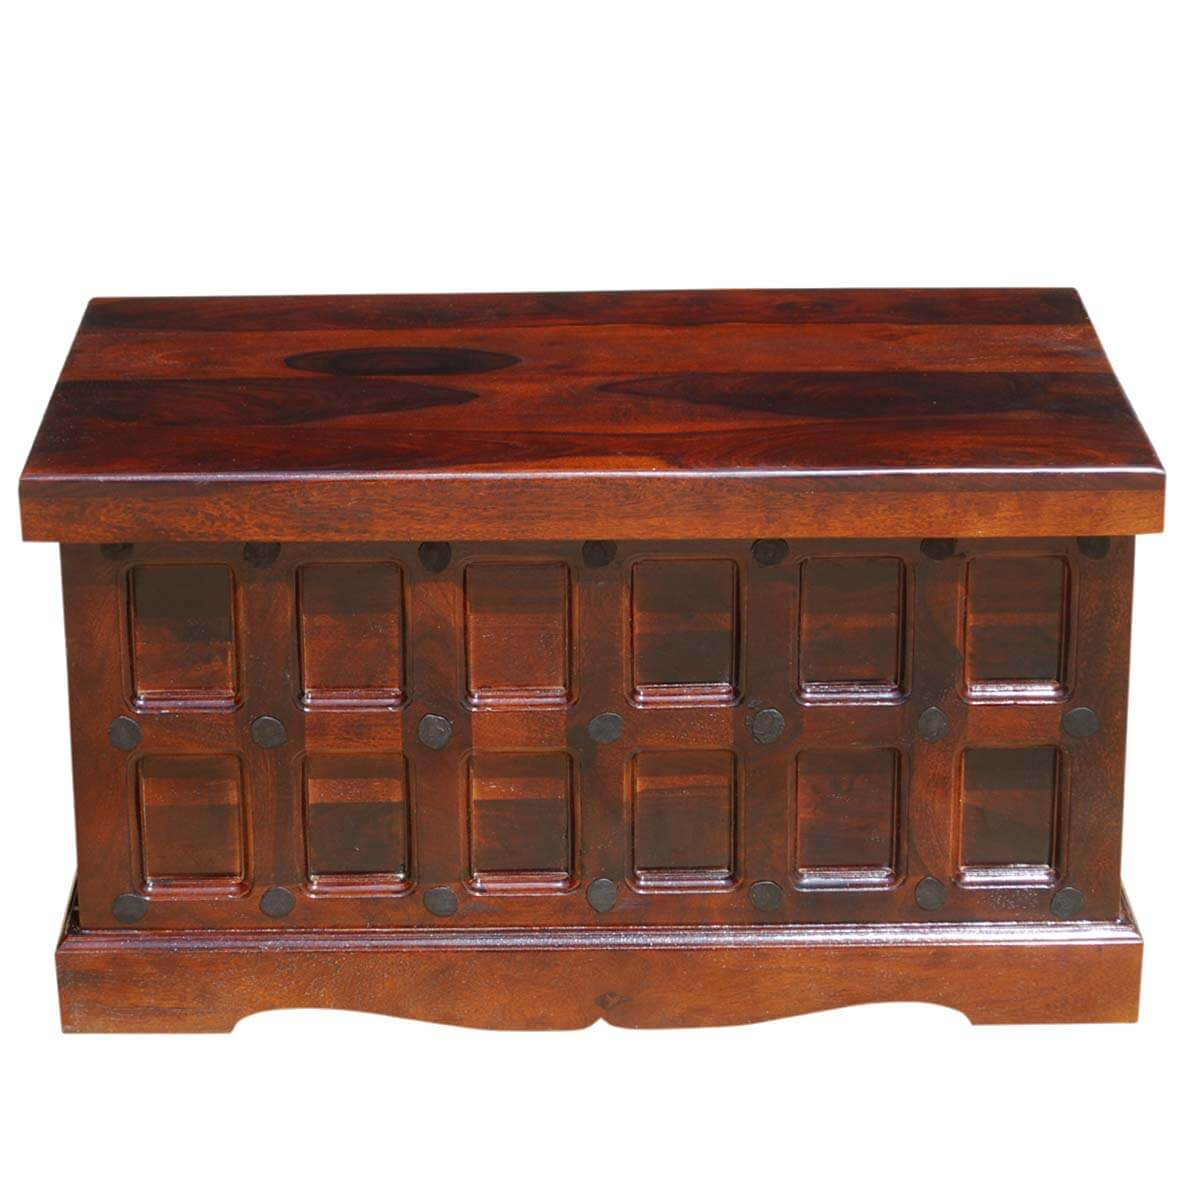 Extra Large Storage Trunk Coffee Table: Solid Wood Trunk Coffee Table Blanket Storage Chest